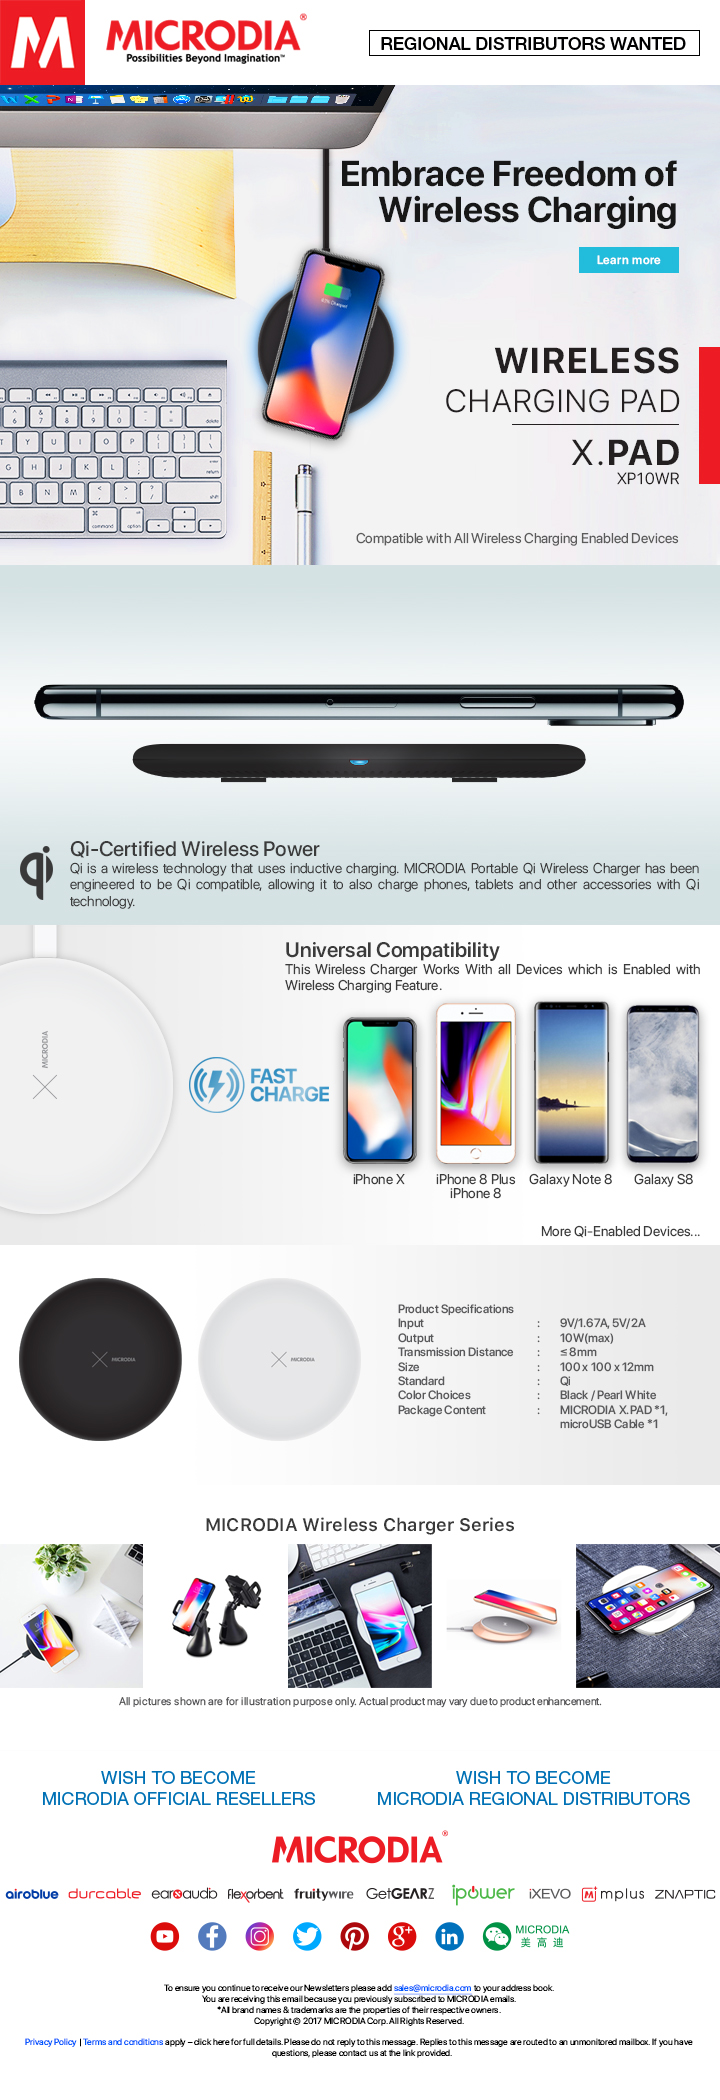 Embrace Freedom of Wireless Charging